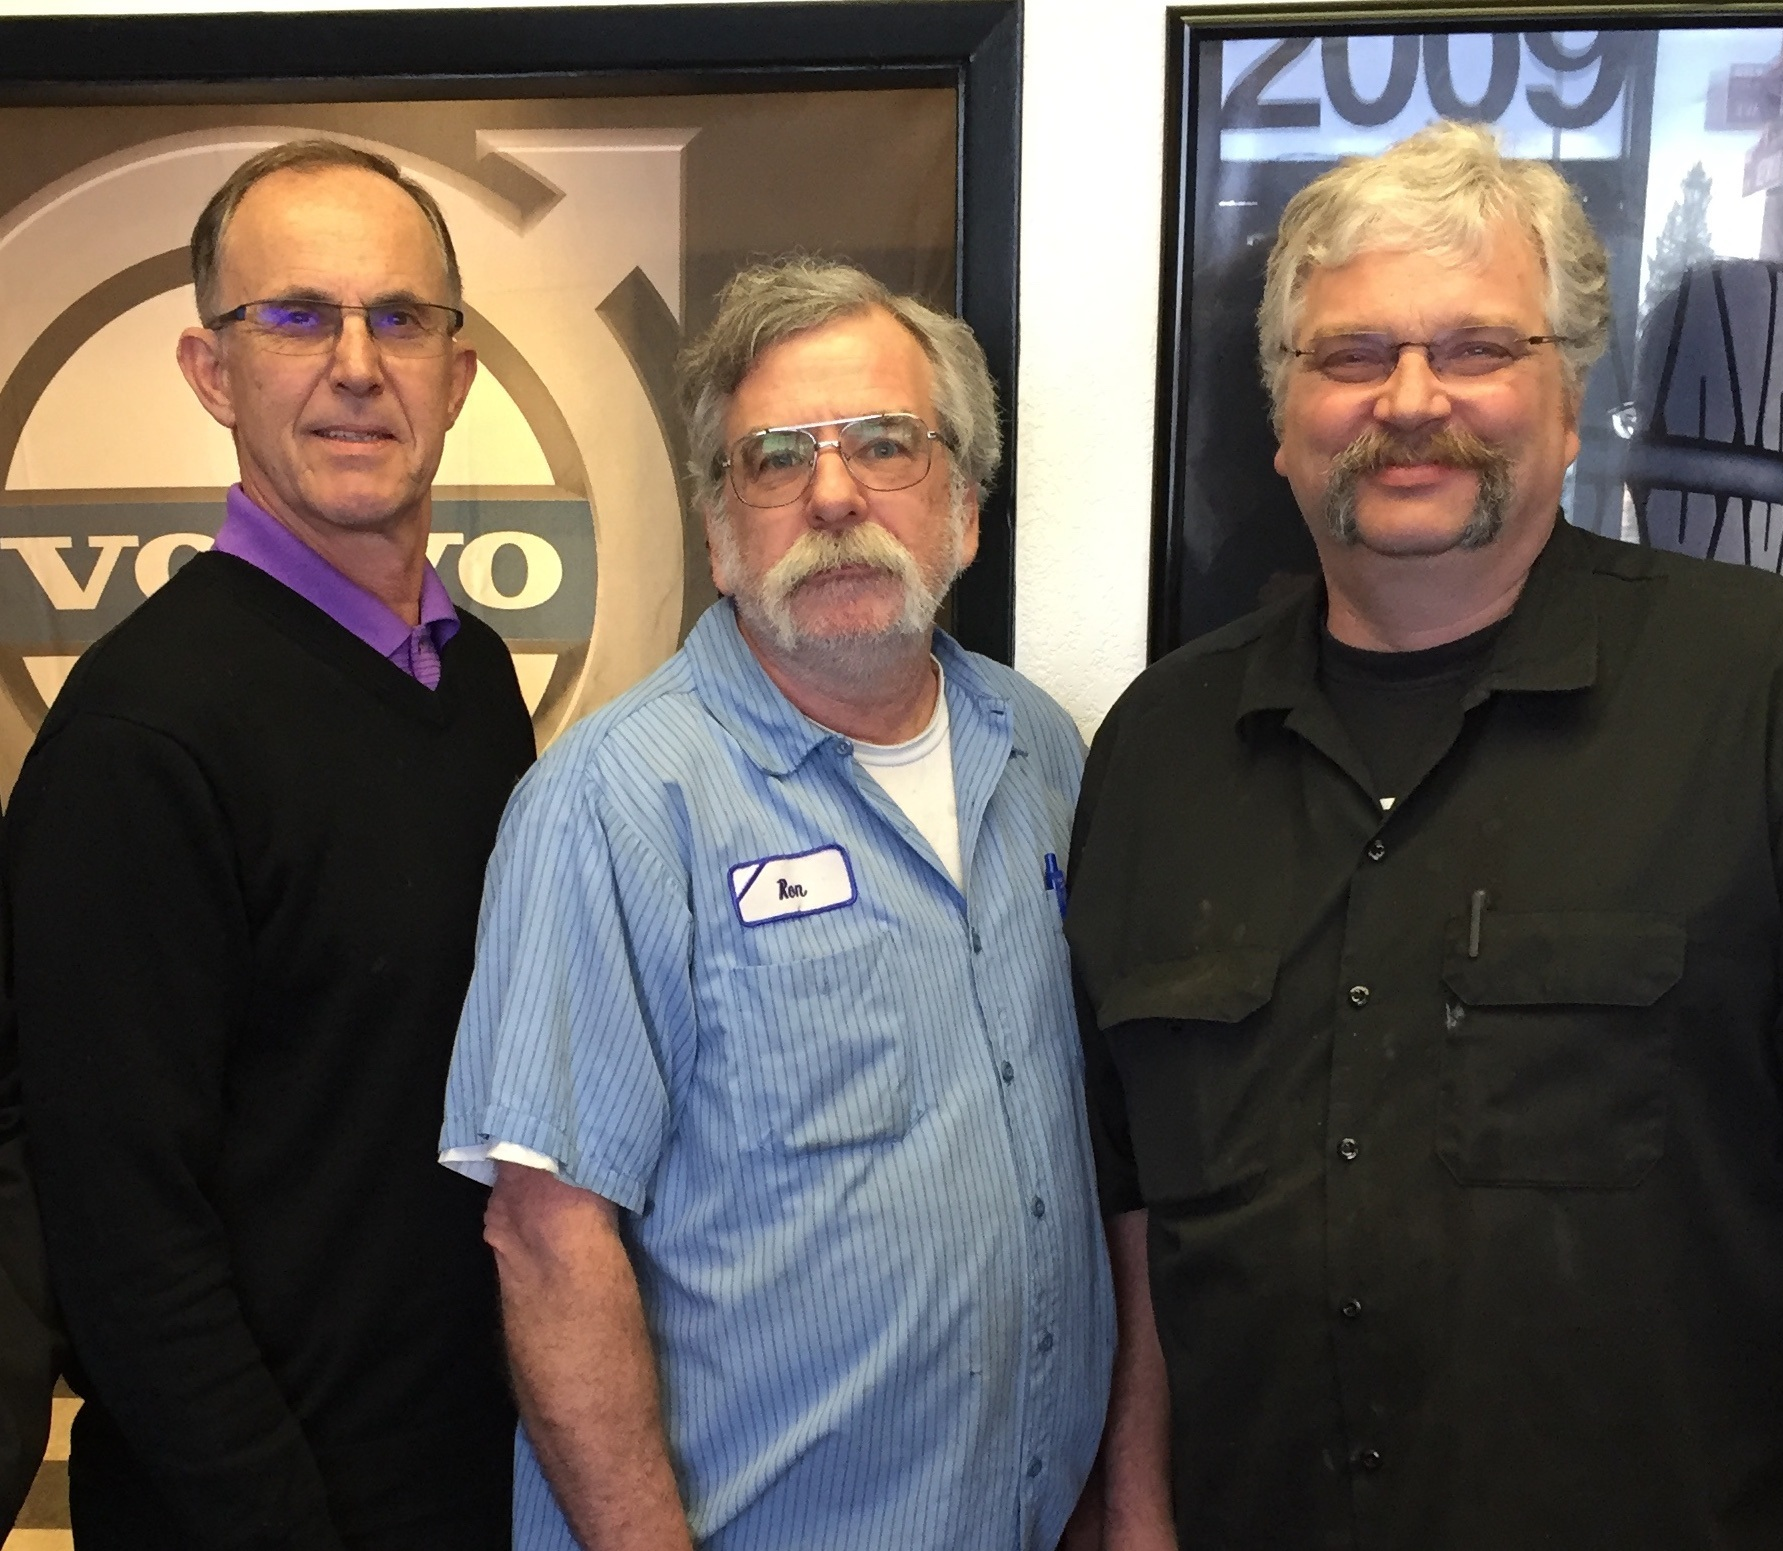 Left to Right: General Manager and President/Founder Robert Marcello, Technician Ron Flynn, and Production Manager Chuck Lawless.